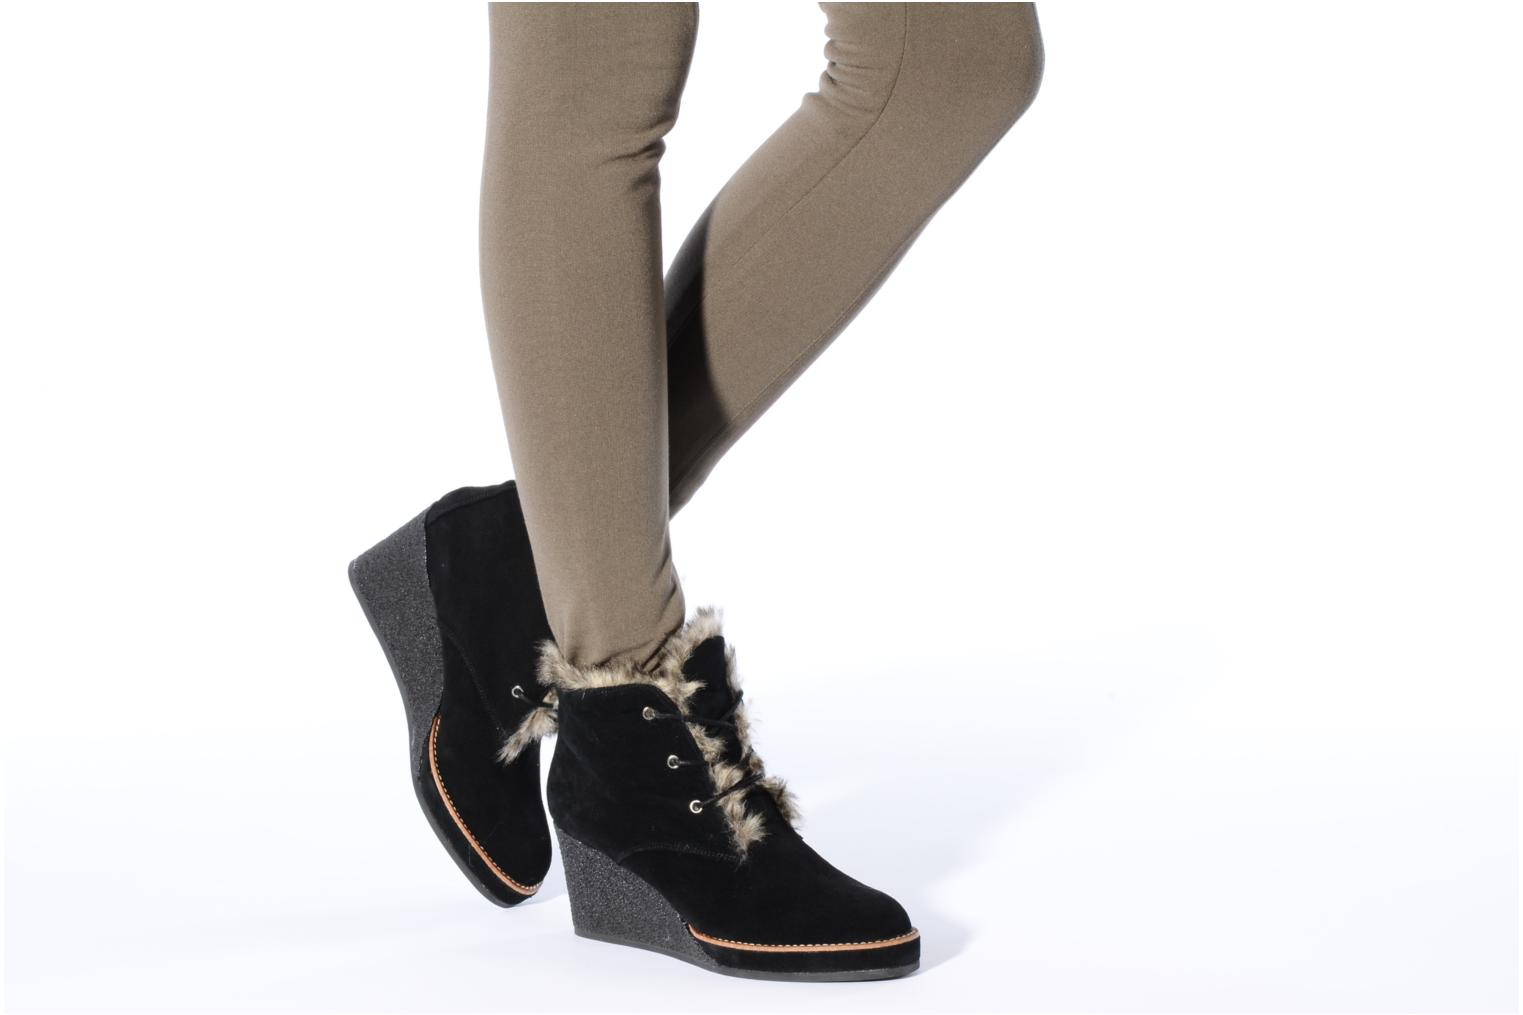 New aki crepe desert botte Black